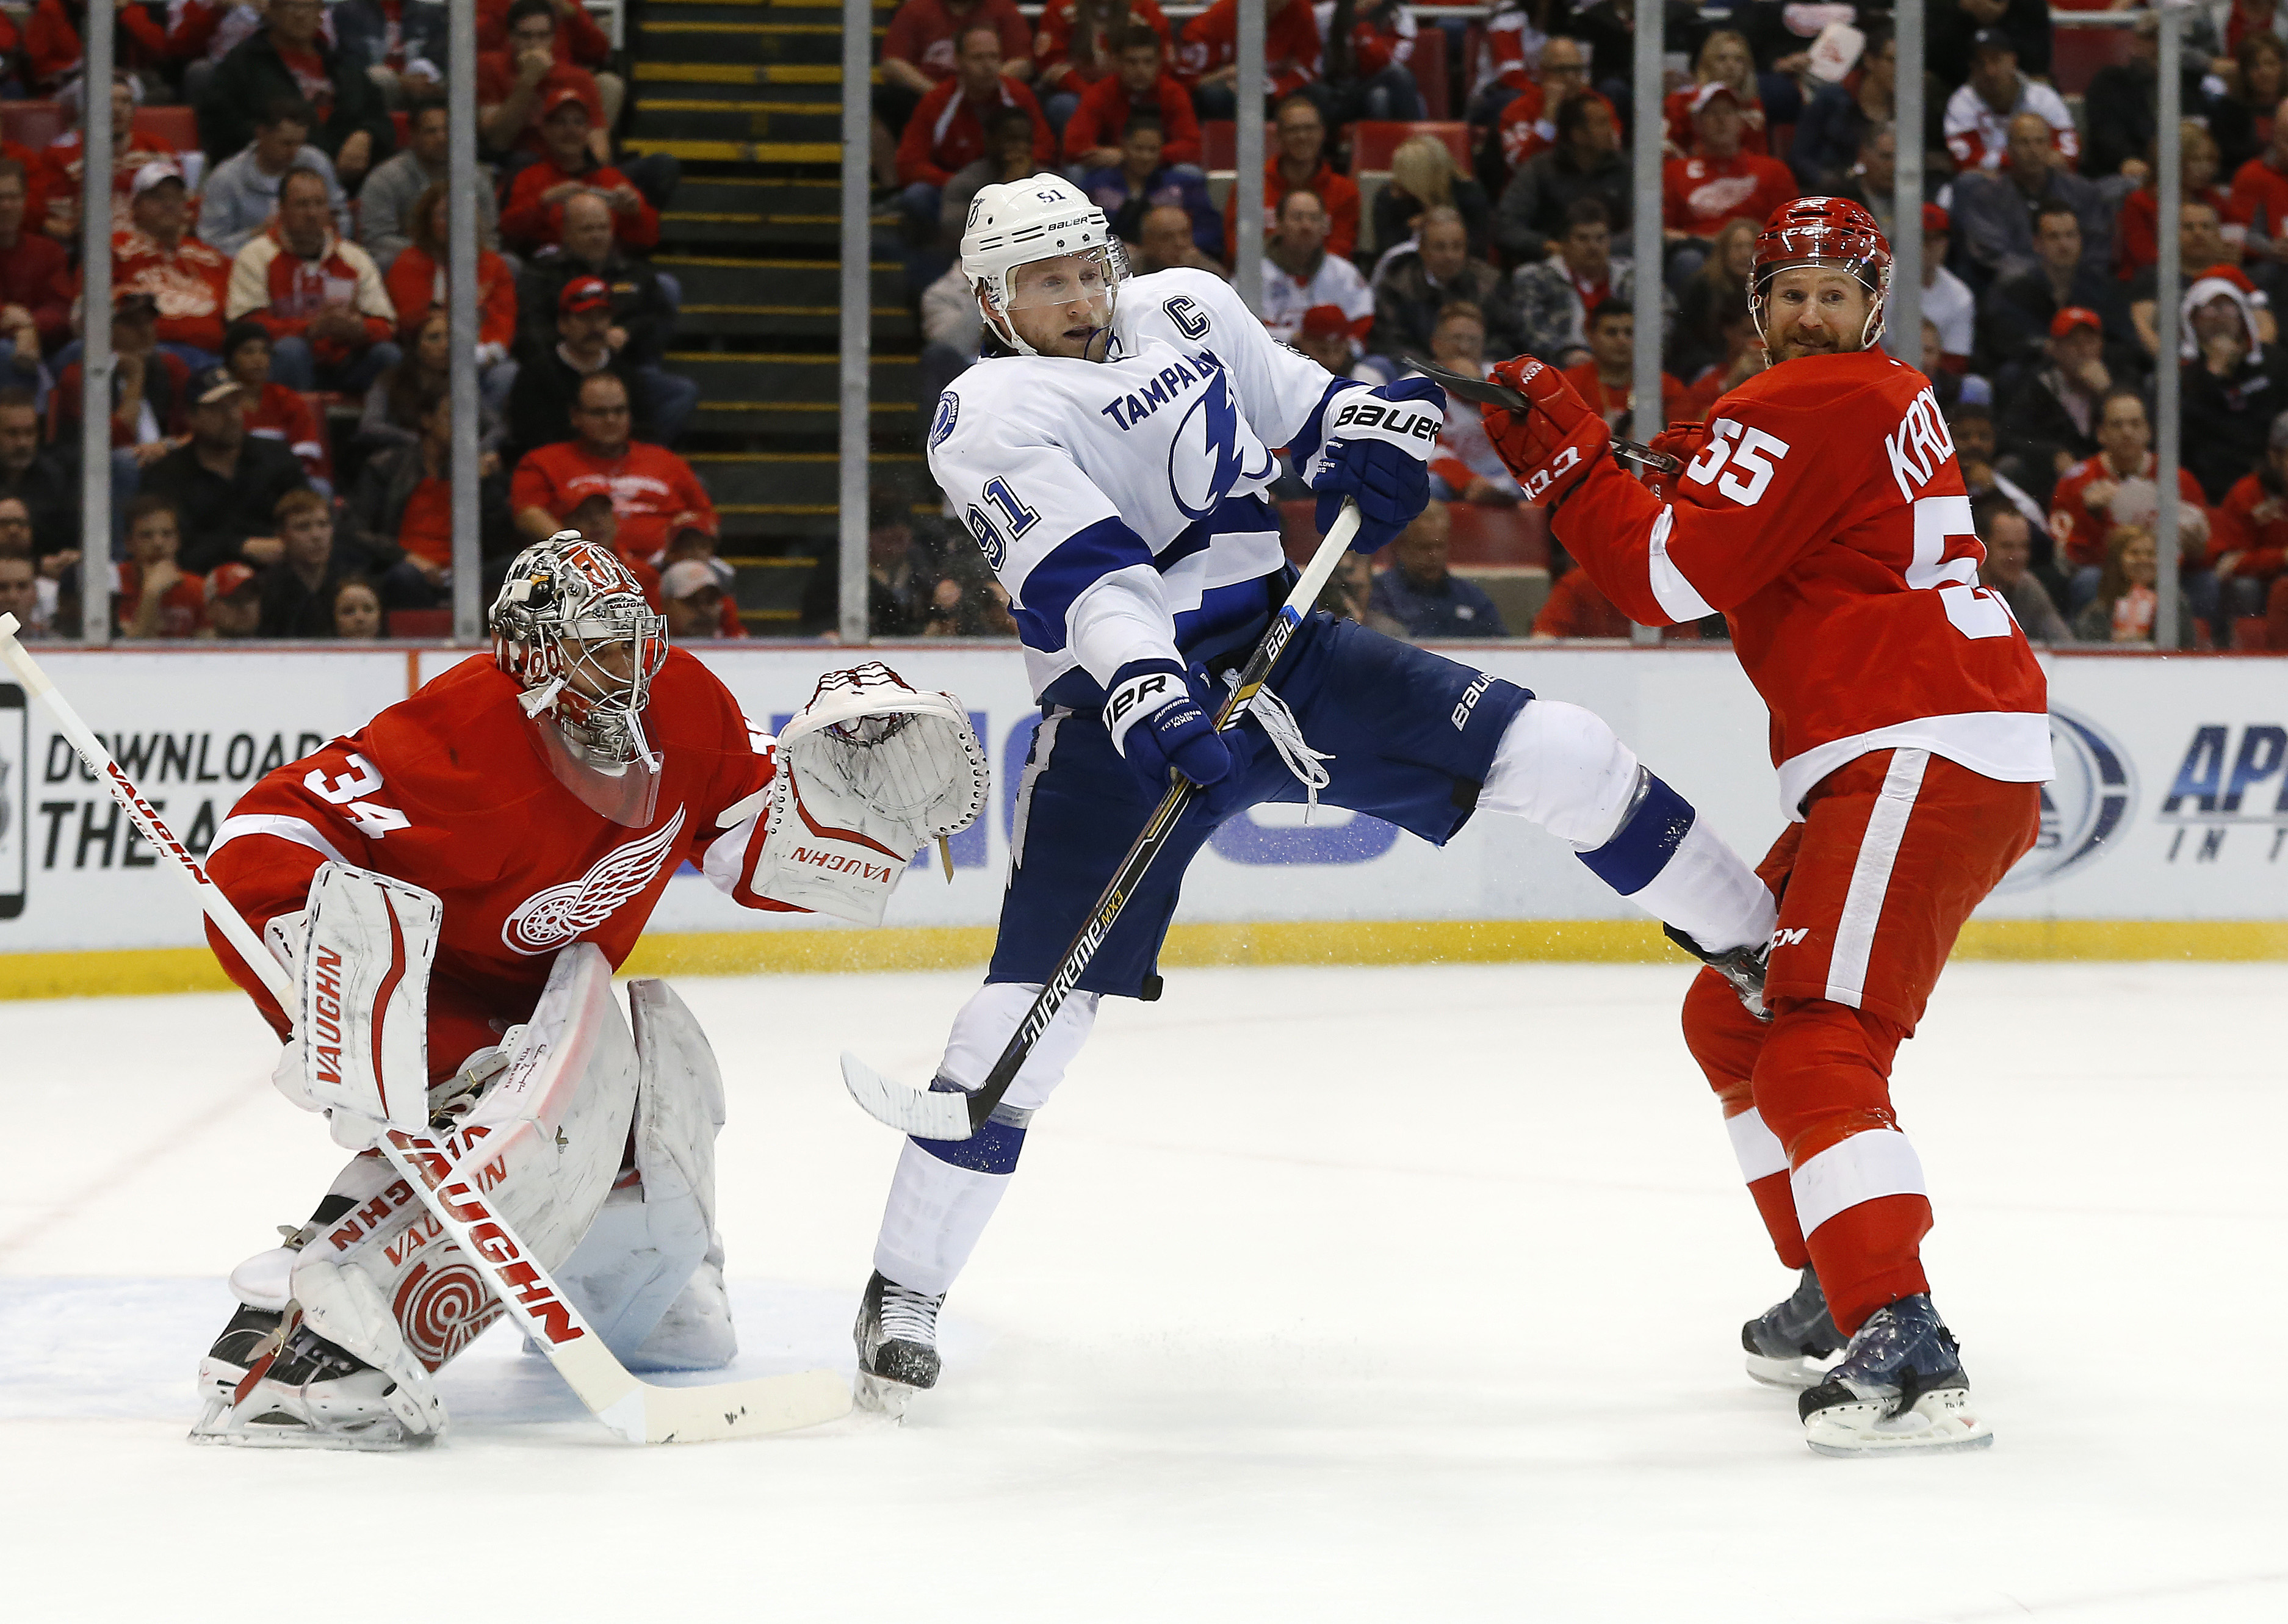 Tampa Bay Lightning center Steven Stamkos, middle, battles for position as Detroit Red Wings defenseman Niklas Kronwall (55) defends with goalie Petr Mrazek (34)in the first period of Game 6 of a first-round NHL Stanley Cup hockey playoff series in Detroi